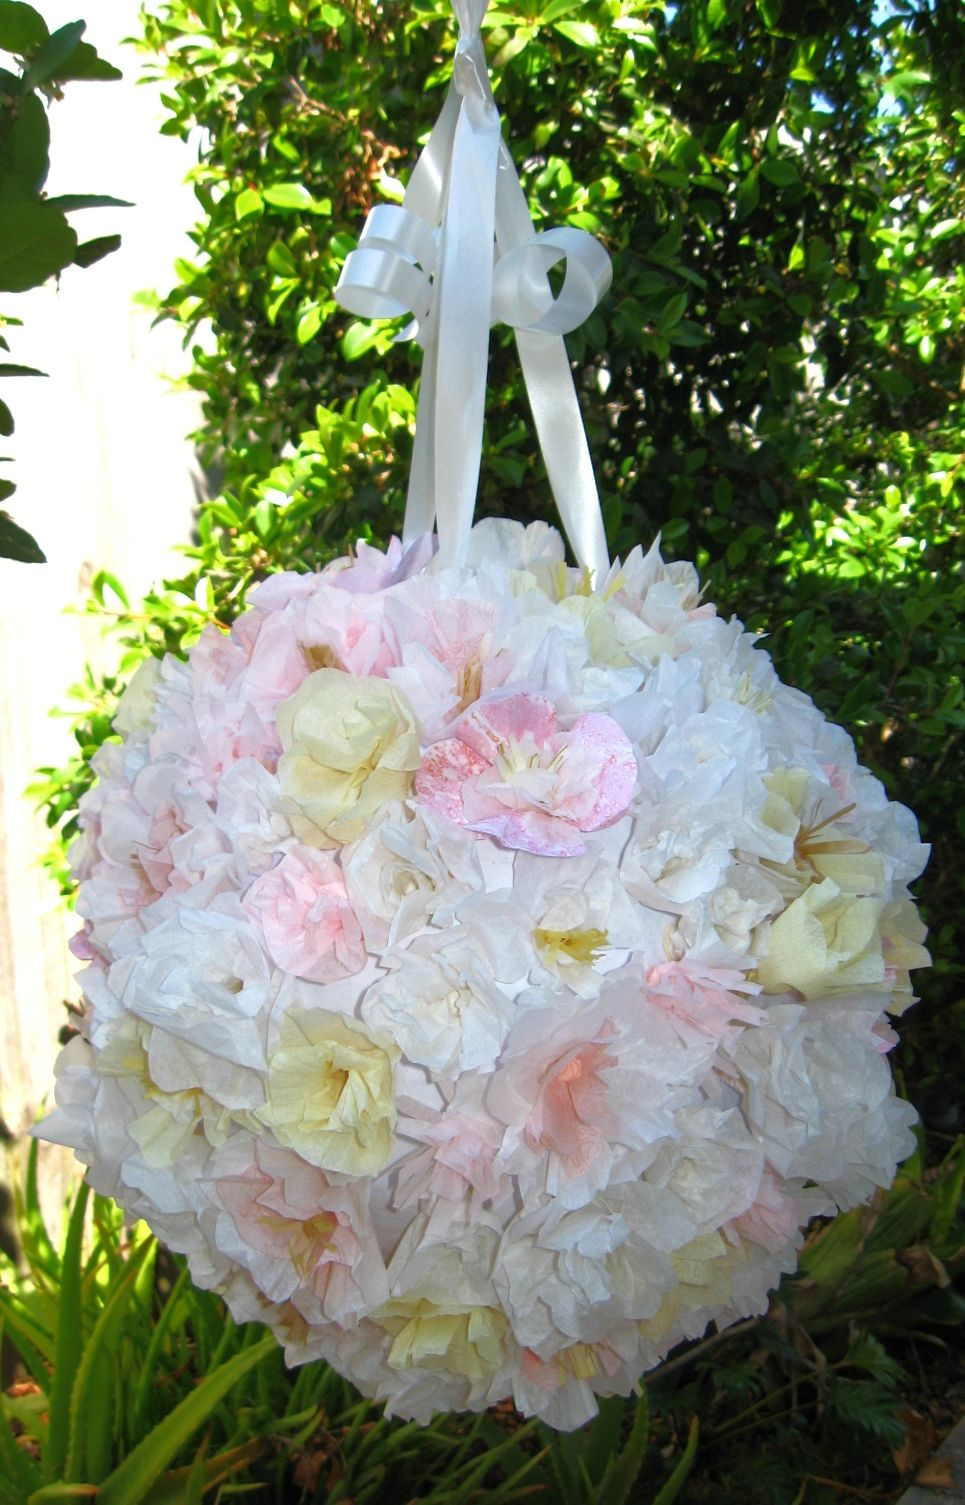 Quickie wedding ideas  Lots of tissue paper flowers on this wedding piñata  Some of our